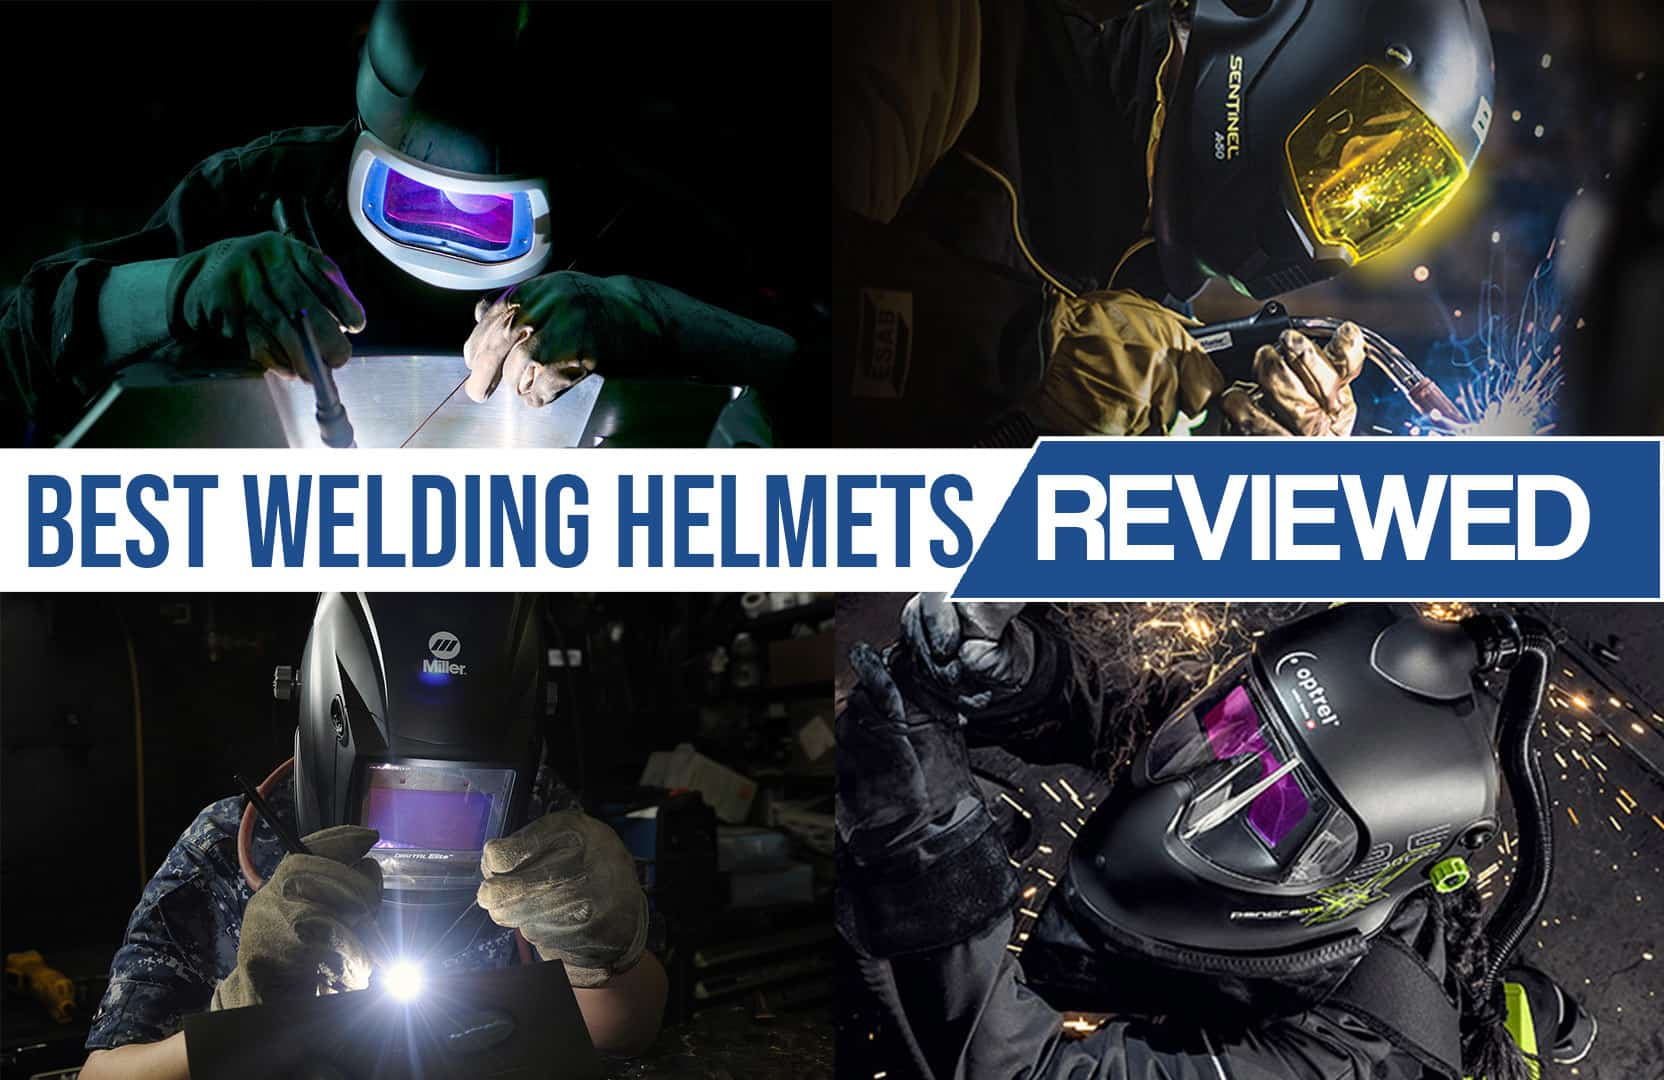 Top 4 Best Welding Helmets in Action